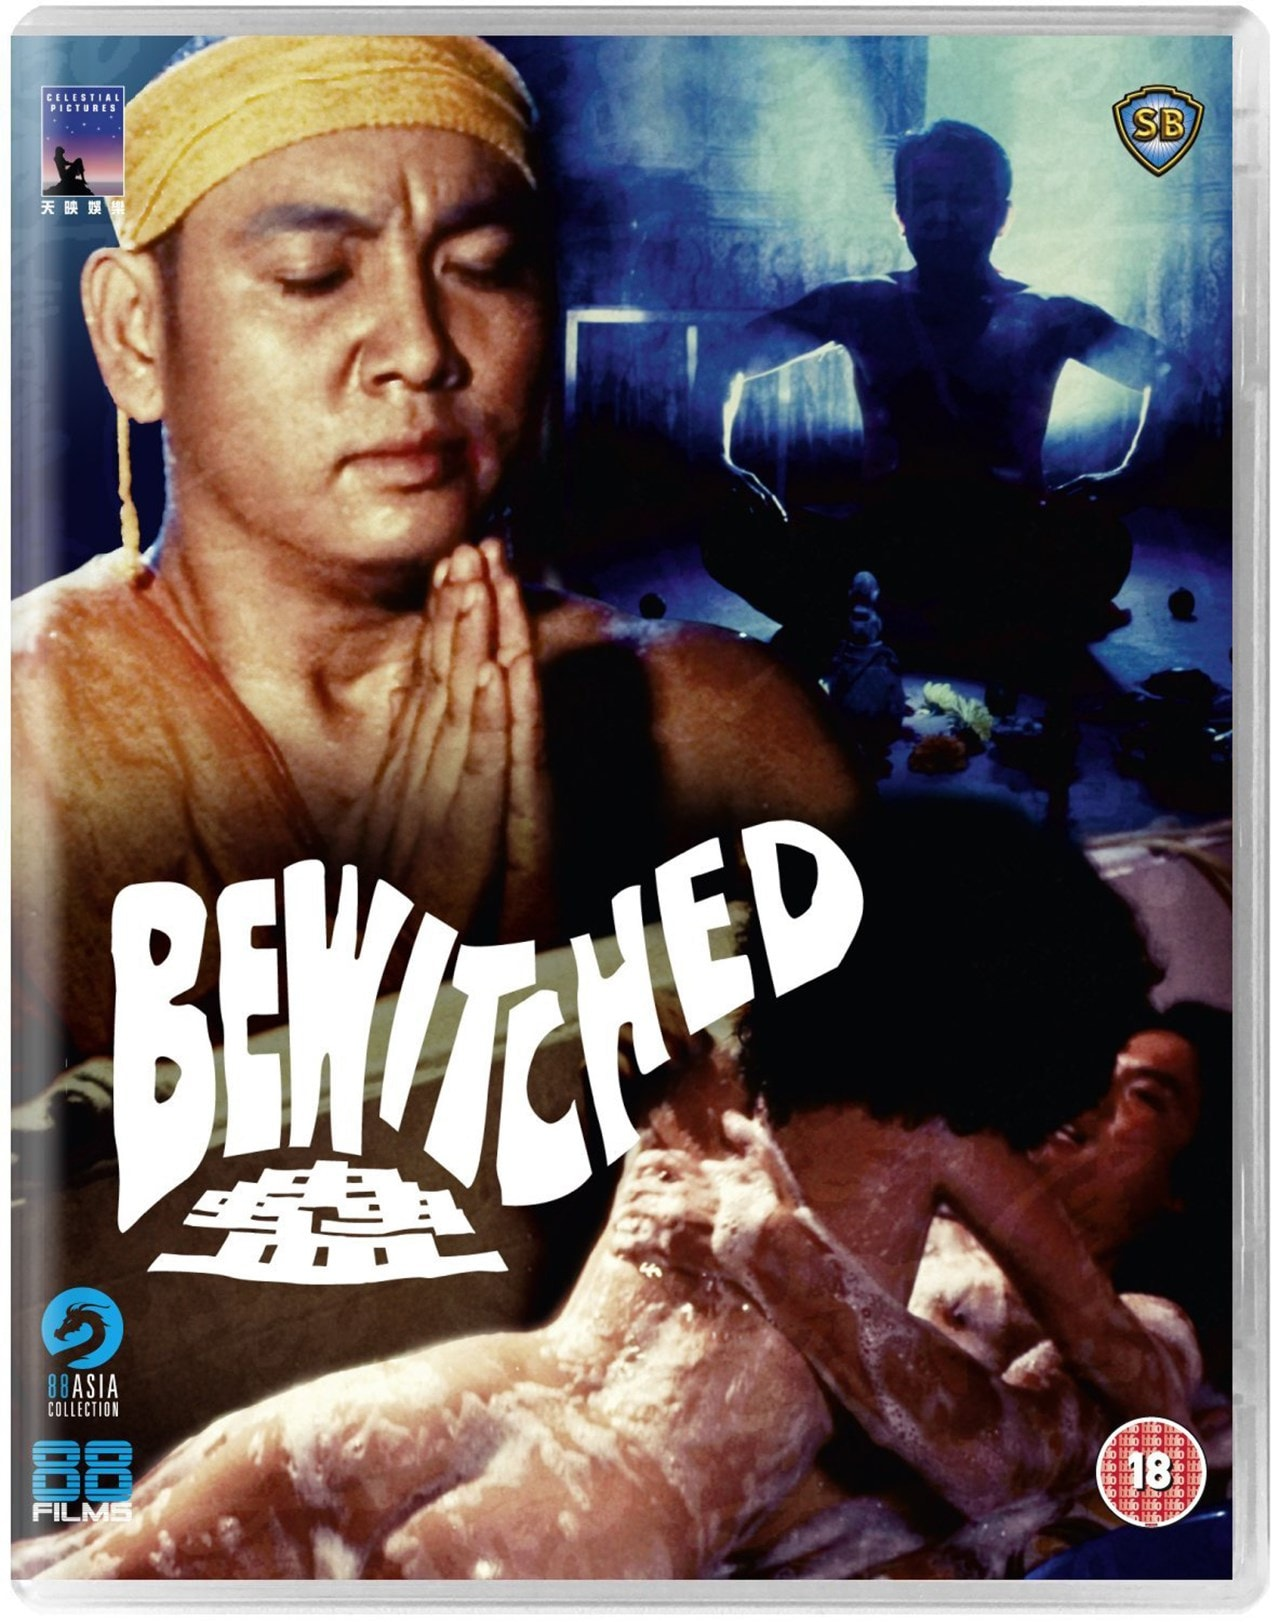 Bewitched - 1